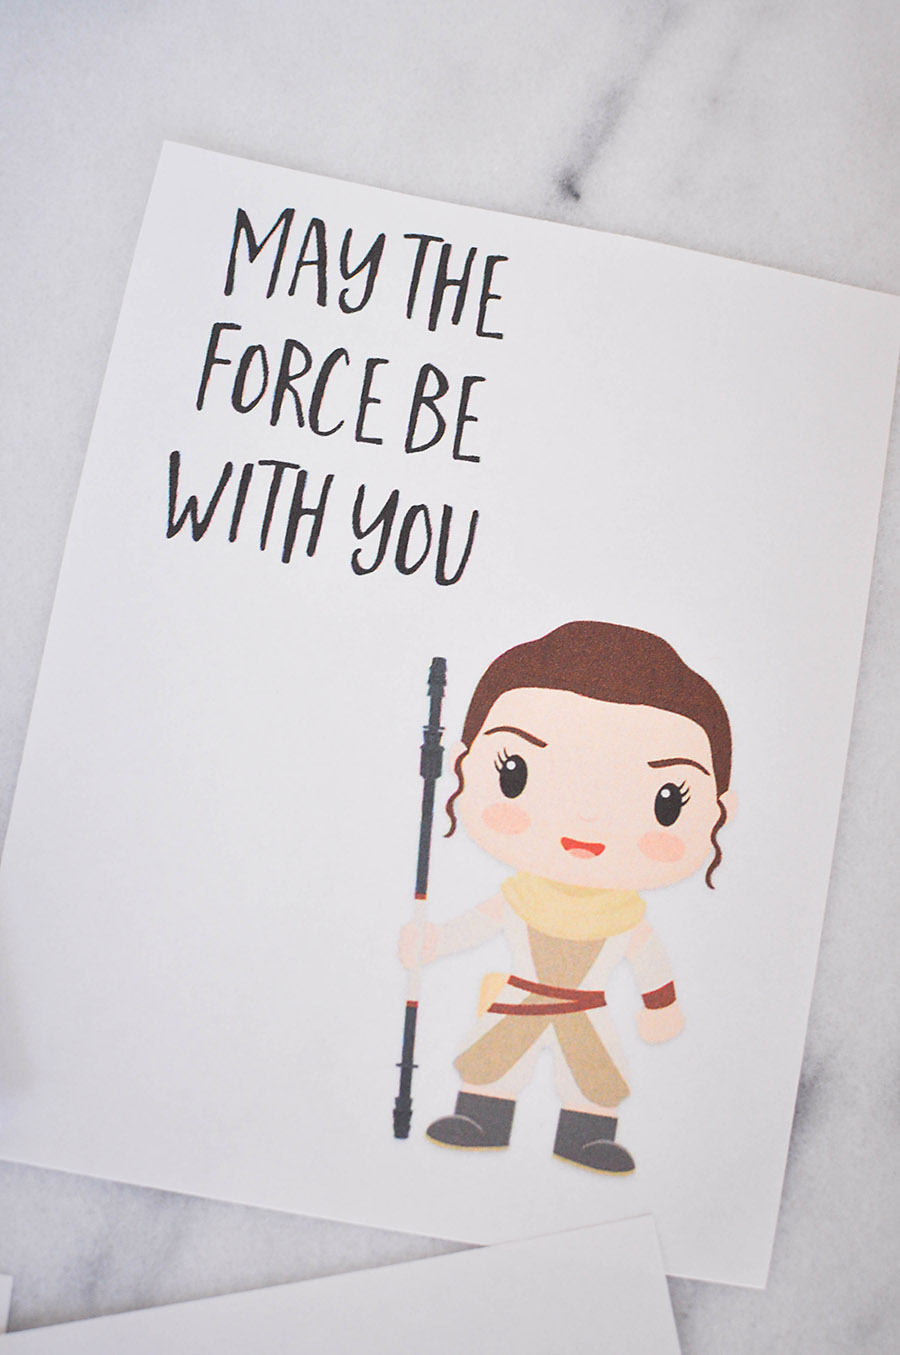 Rey - Star Wars: The Force Awakens Valentines Day Cards   Wit & Wander